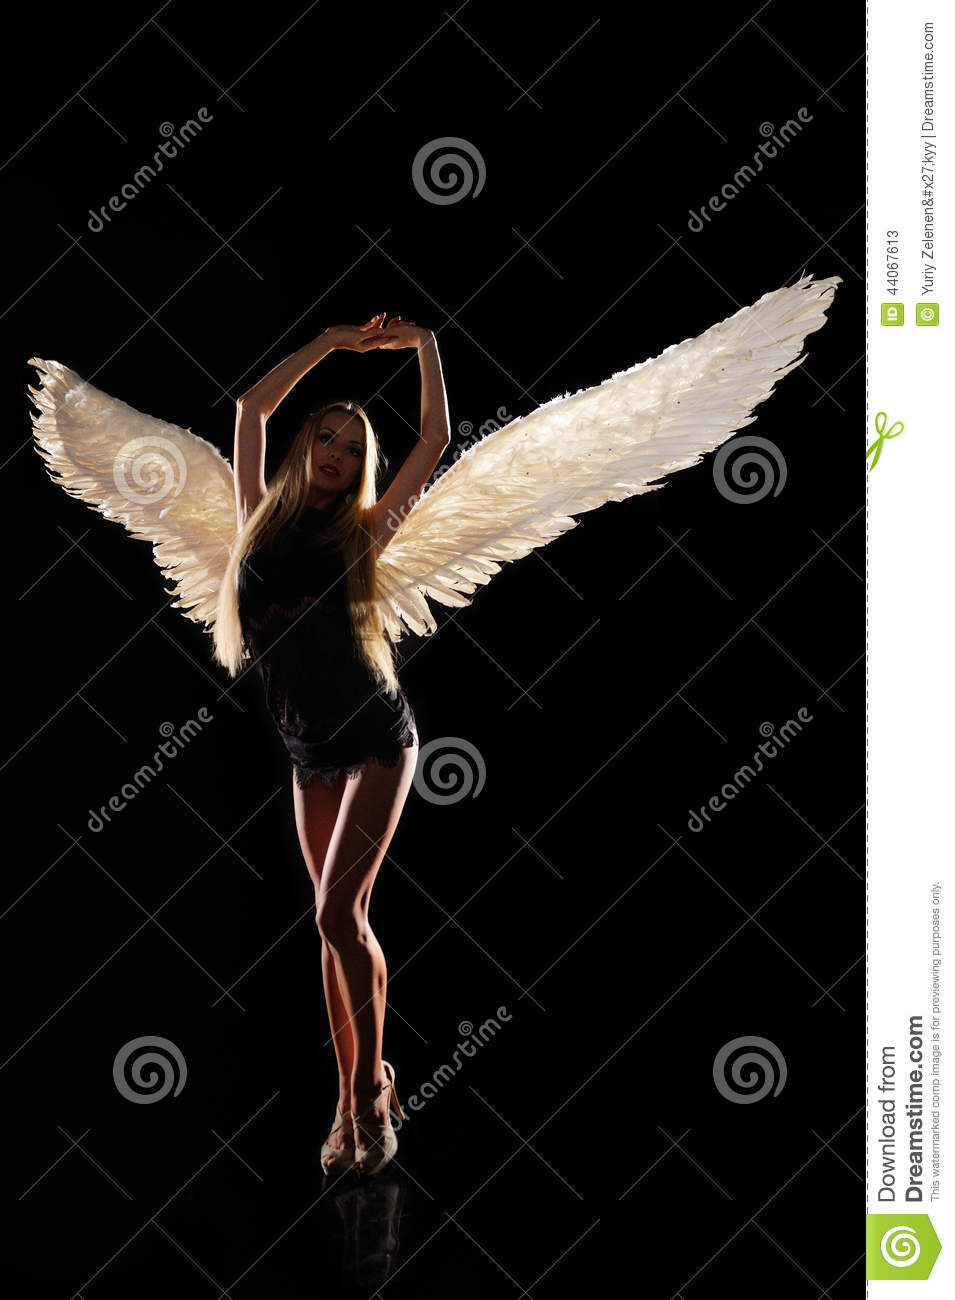 angel wings black background - photo #33